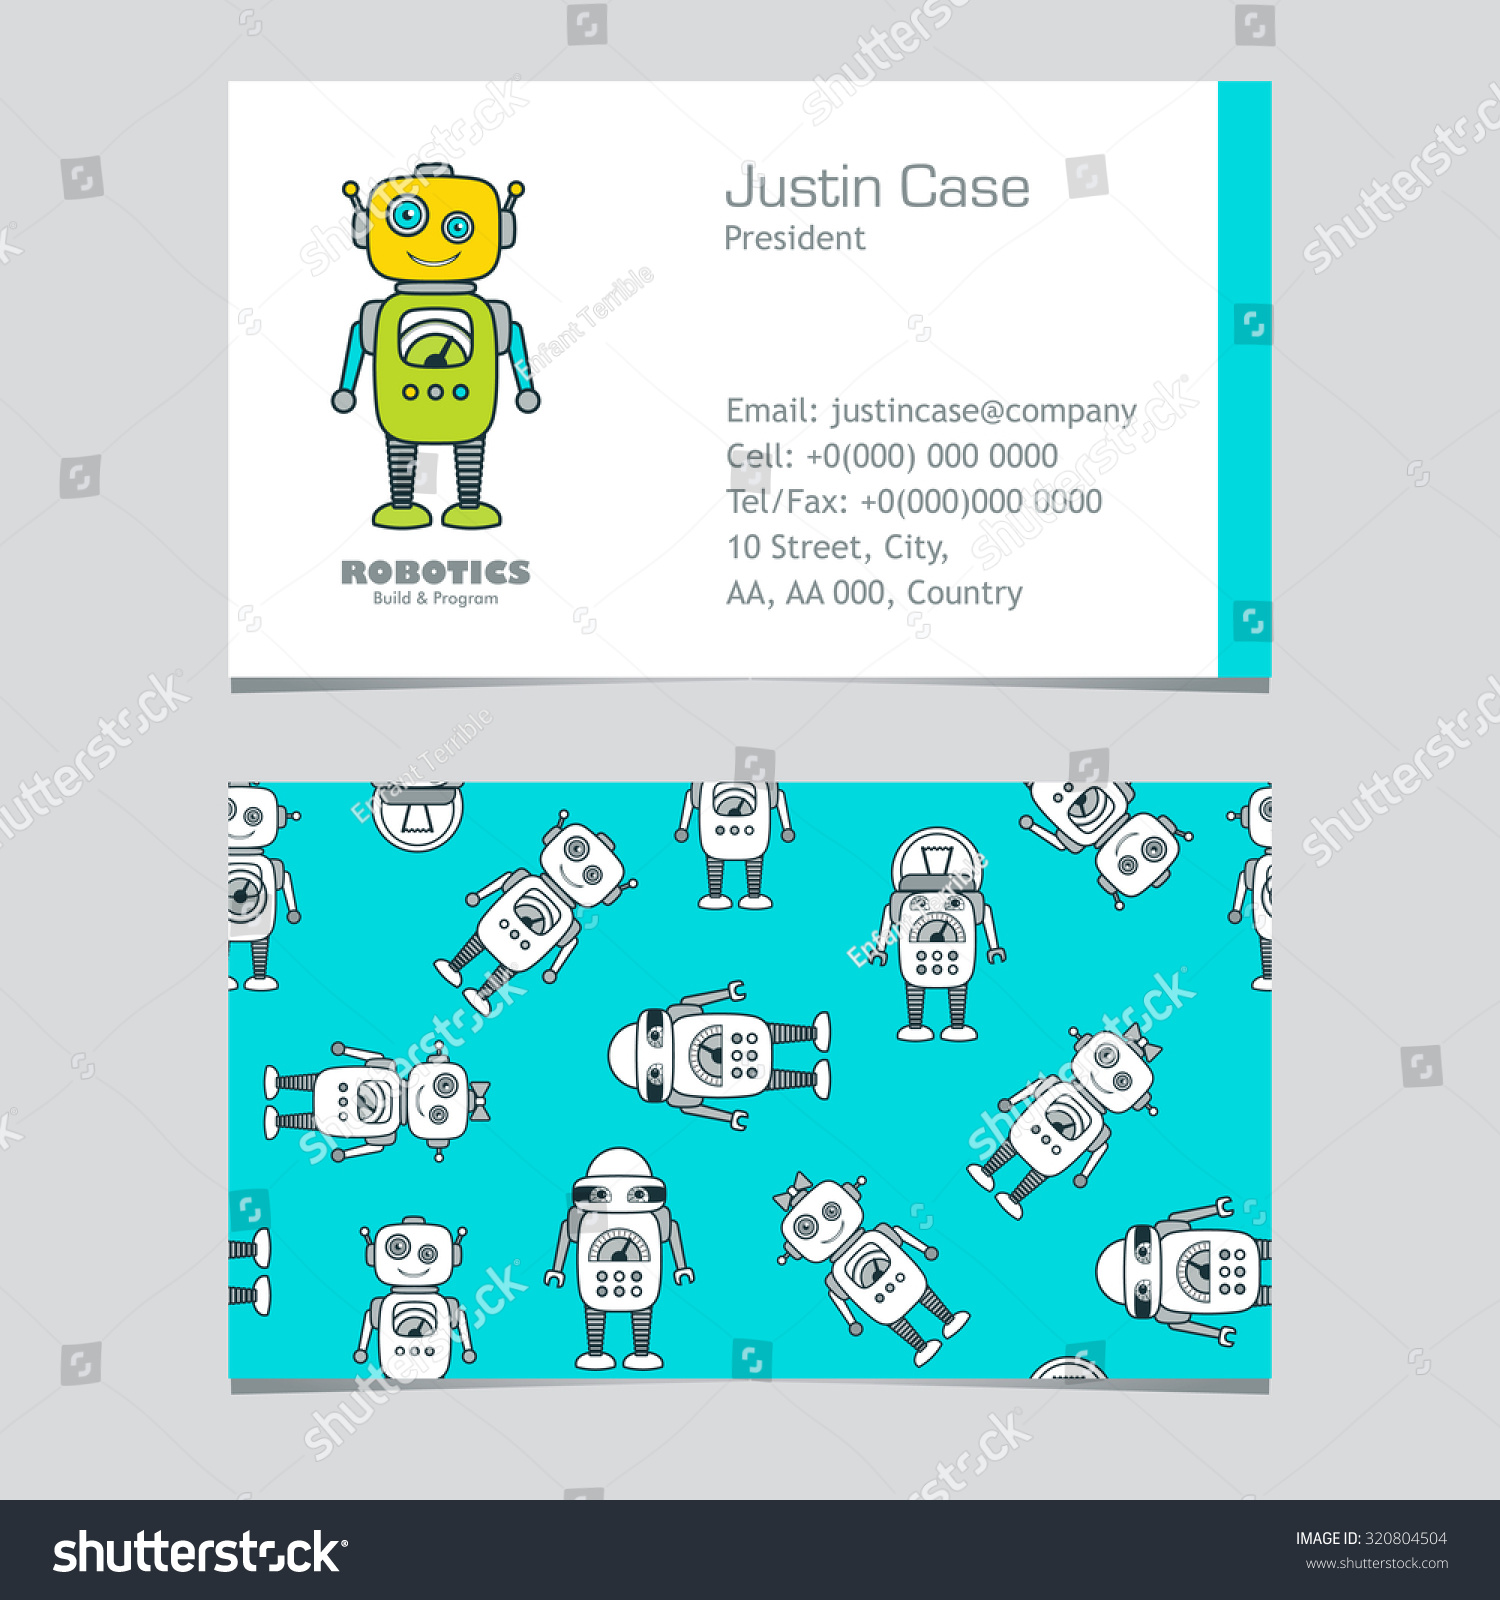 Cute robot cartoon character educational flat stock vector 320804504 cute robot cartoon character educational flat icon business card template school after reheart Gallery